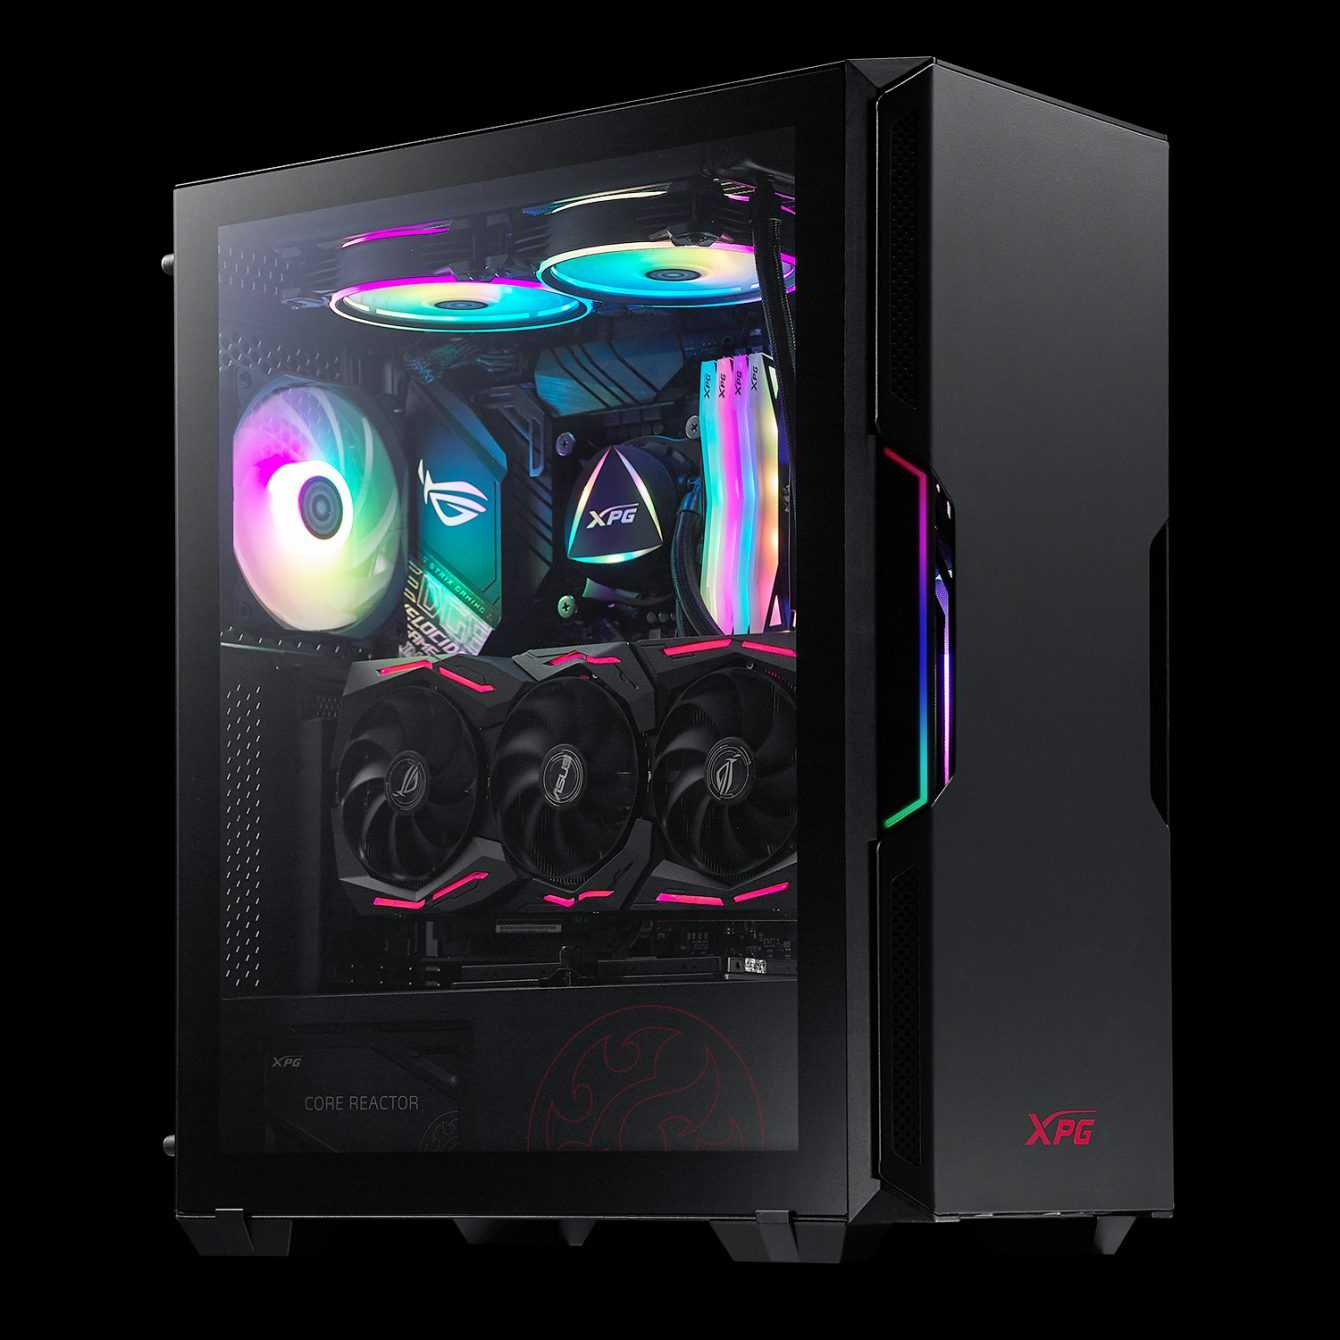 XPG STARKER AIR and XPG DEFENDER: here are the new meshati cases